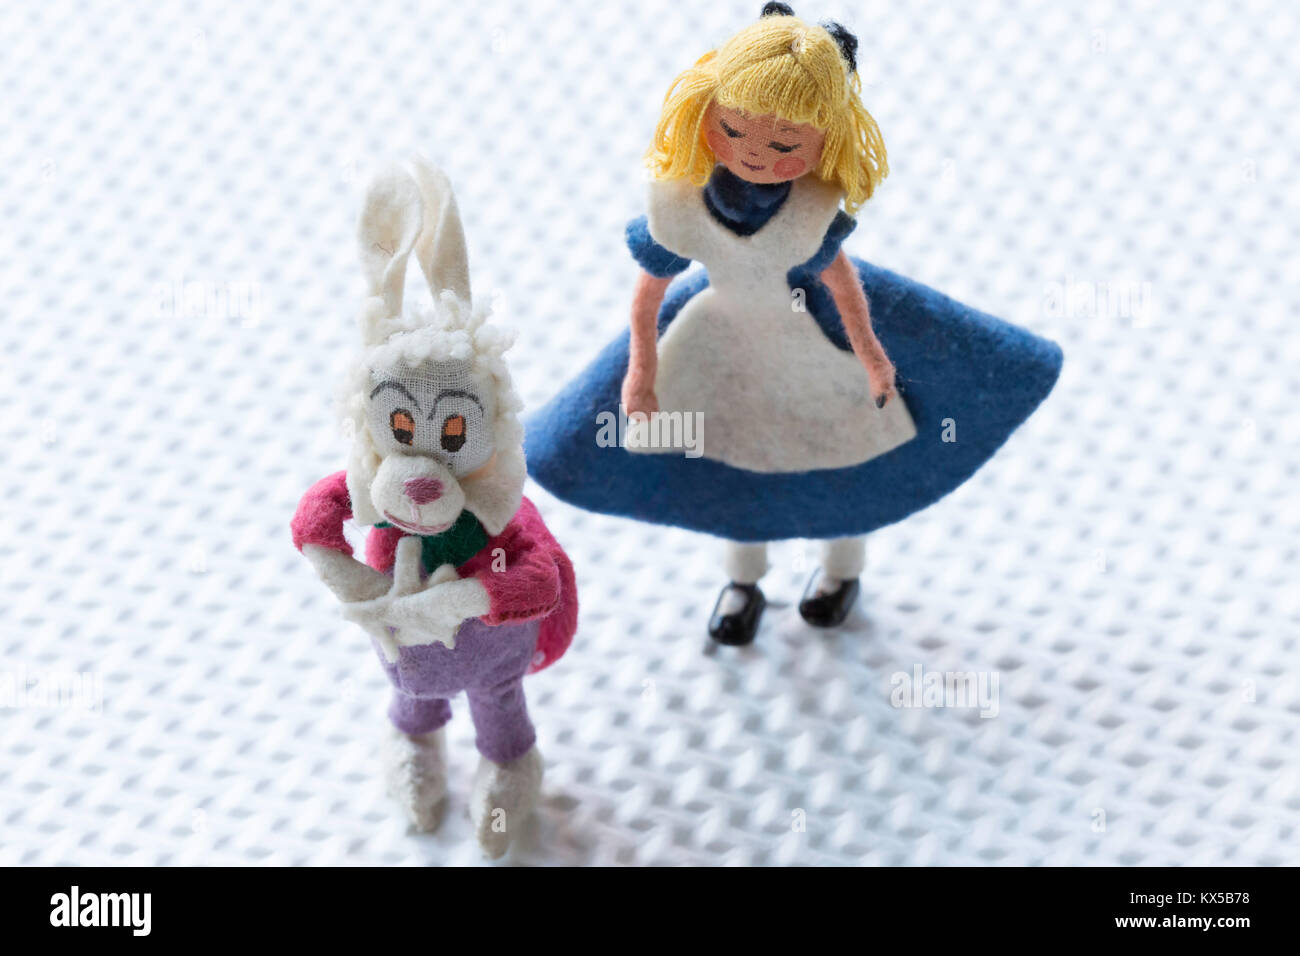 Alice In Wonderland White Rabbit Stockfotos & Alice In Wonderland ...